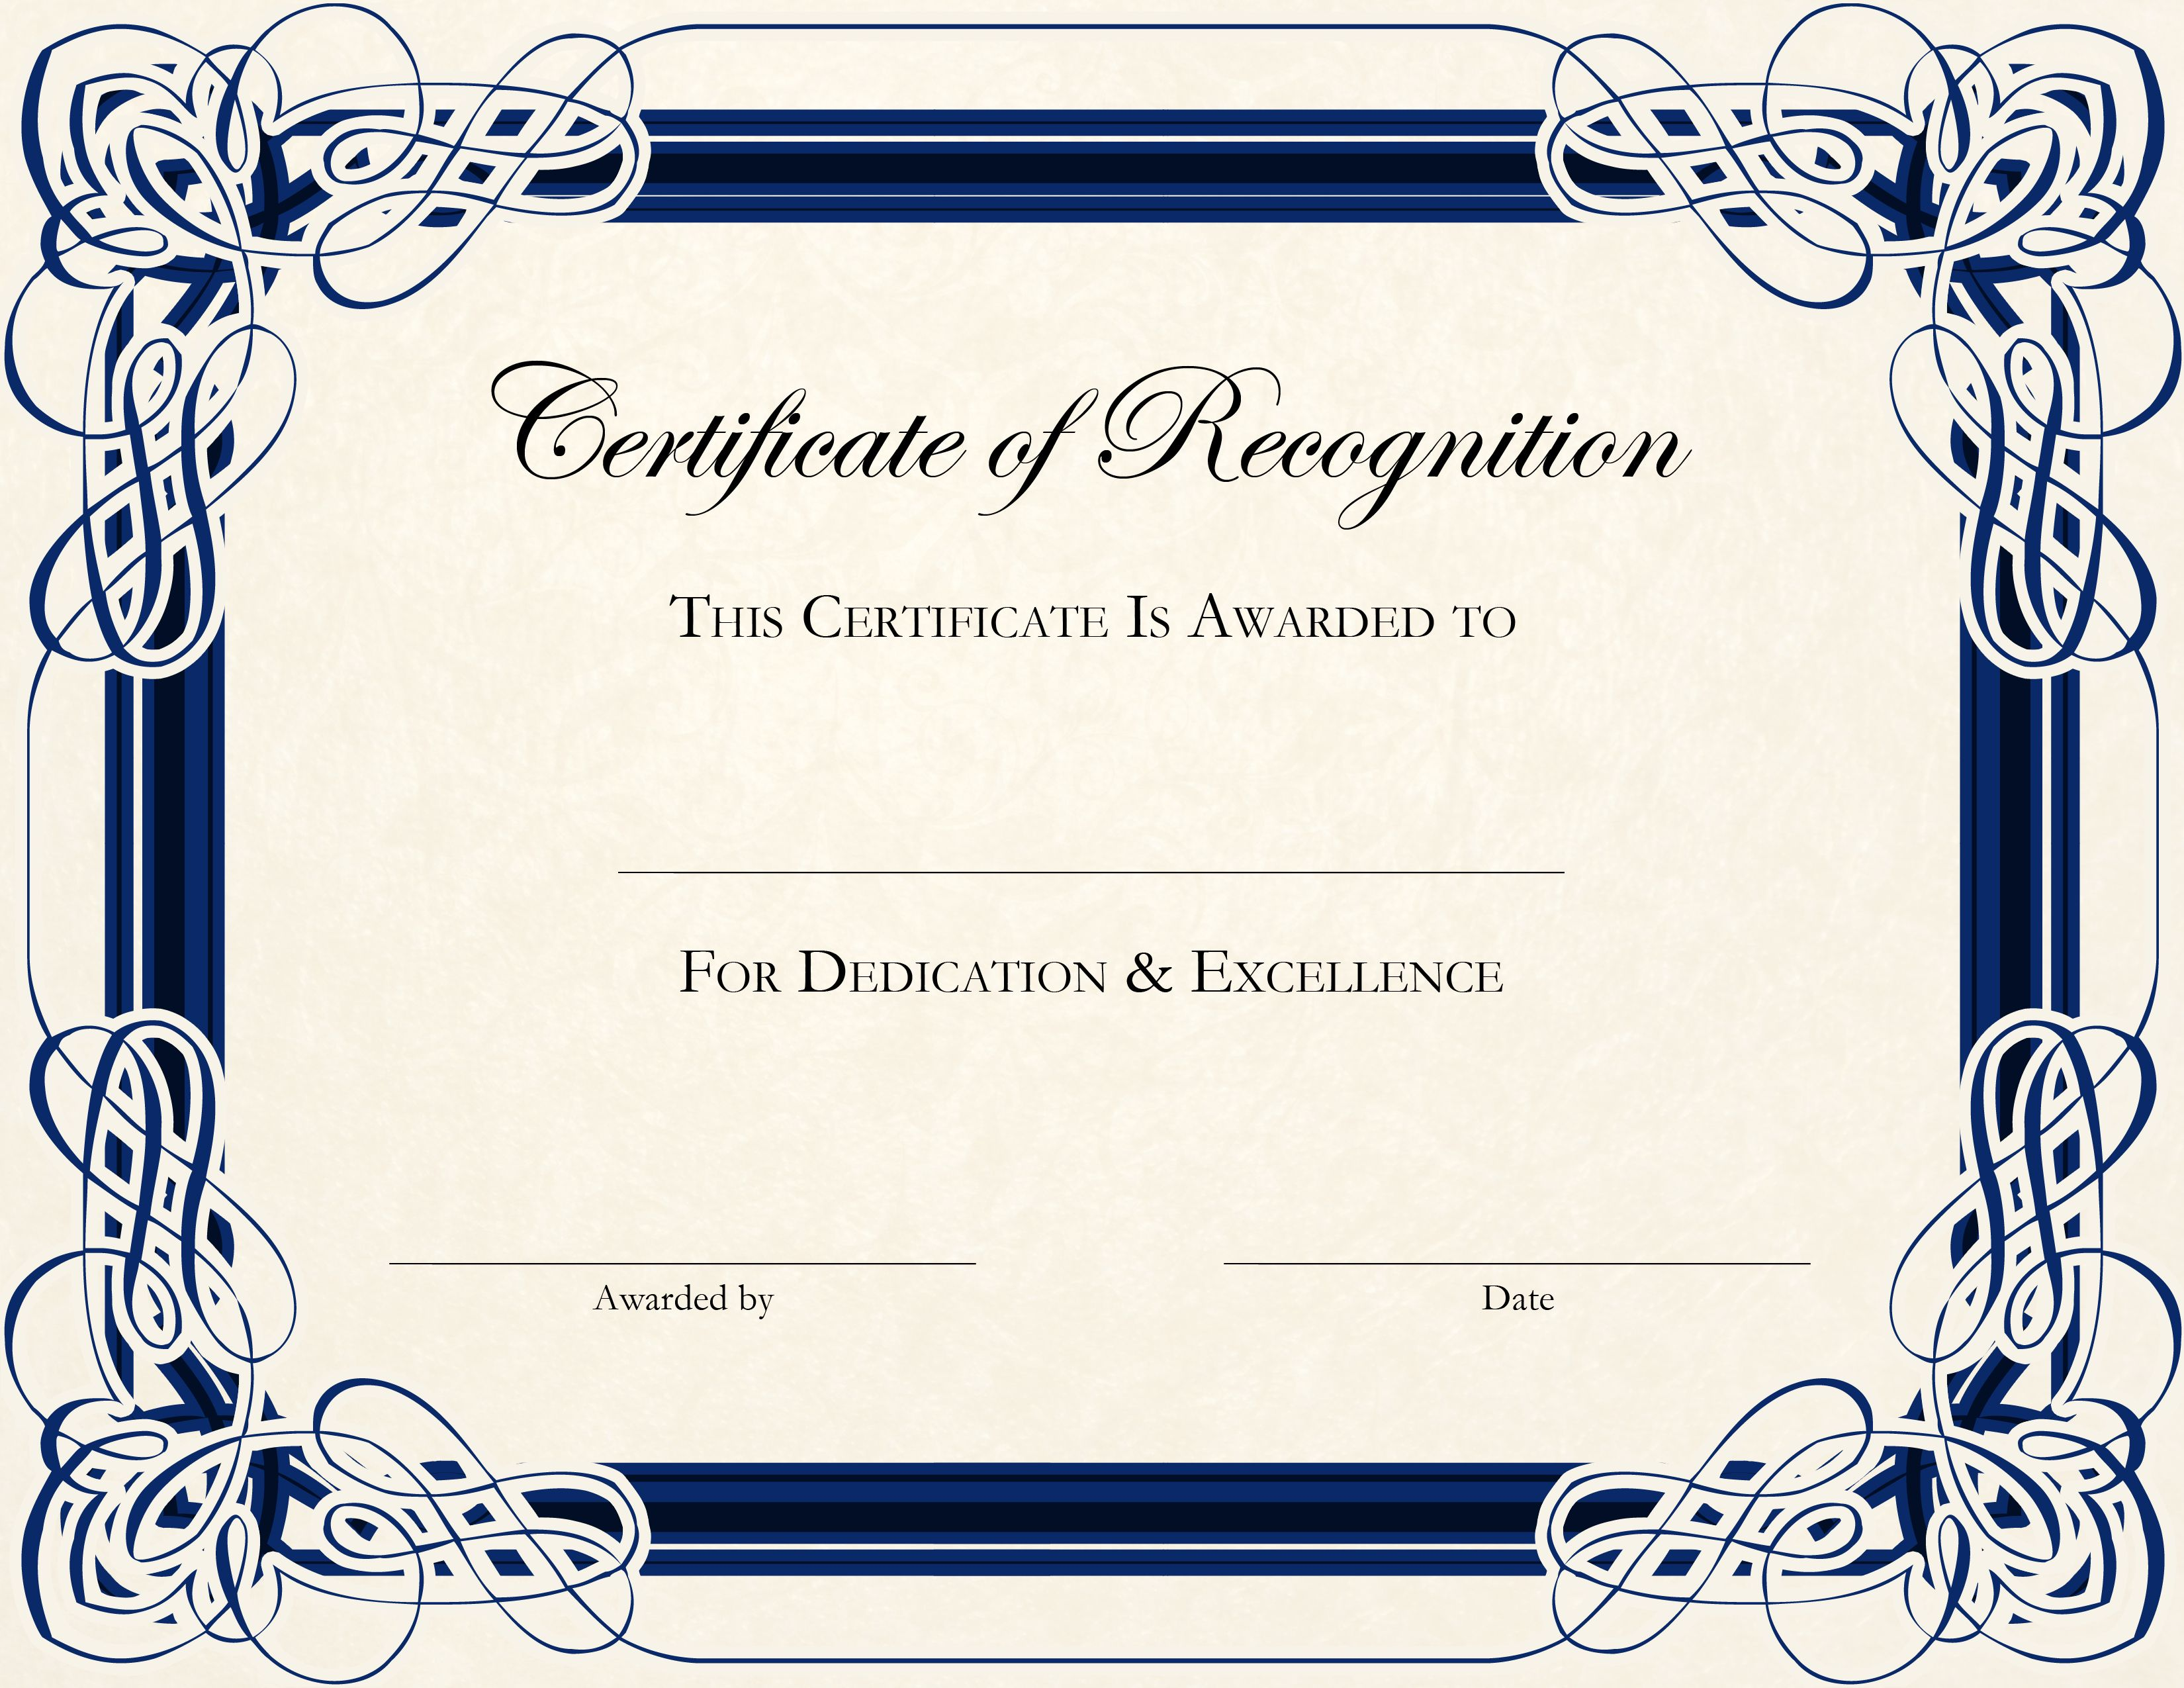 certificate template ms word – Microsoft Certificate of Excellence